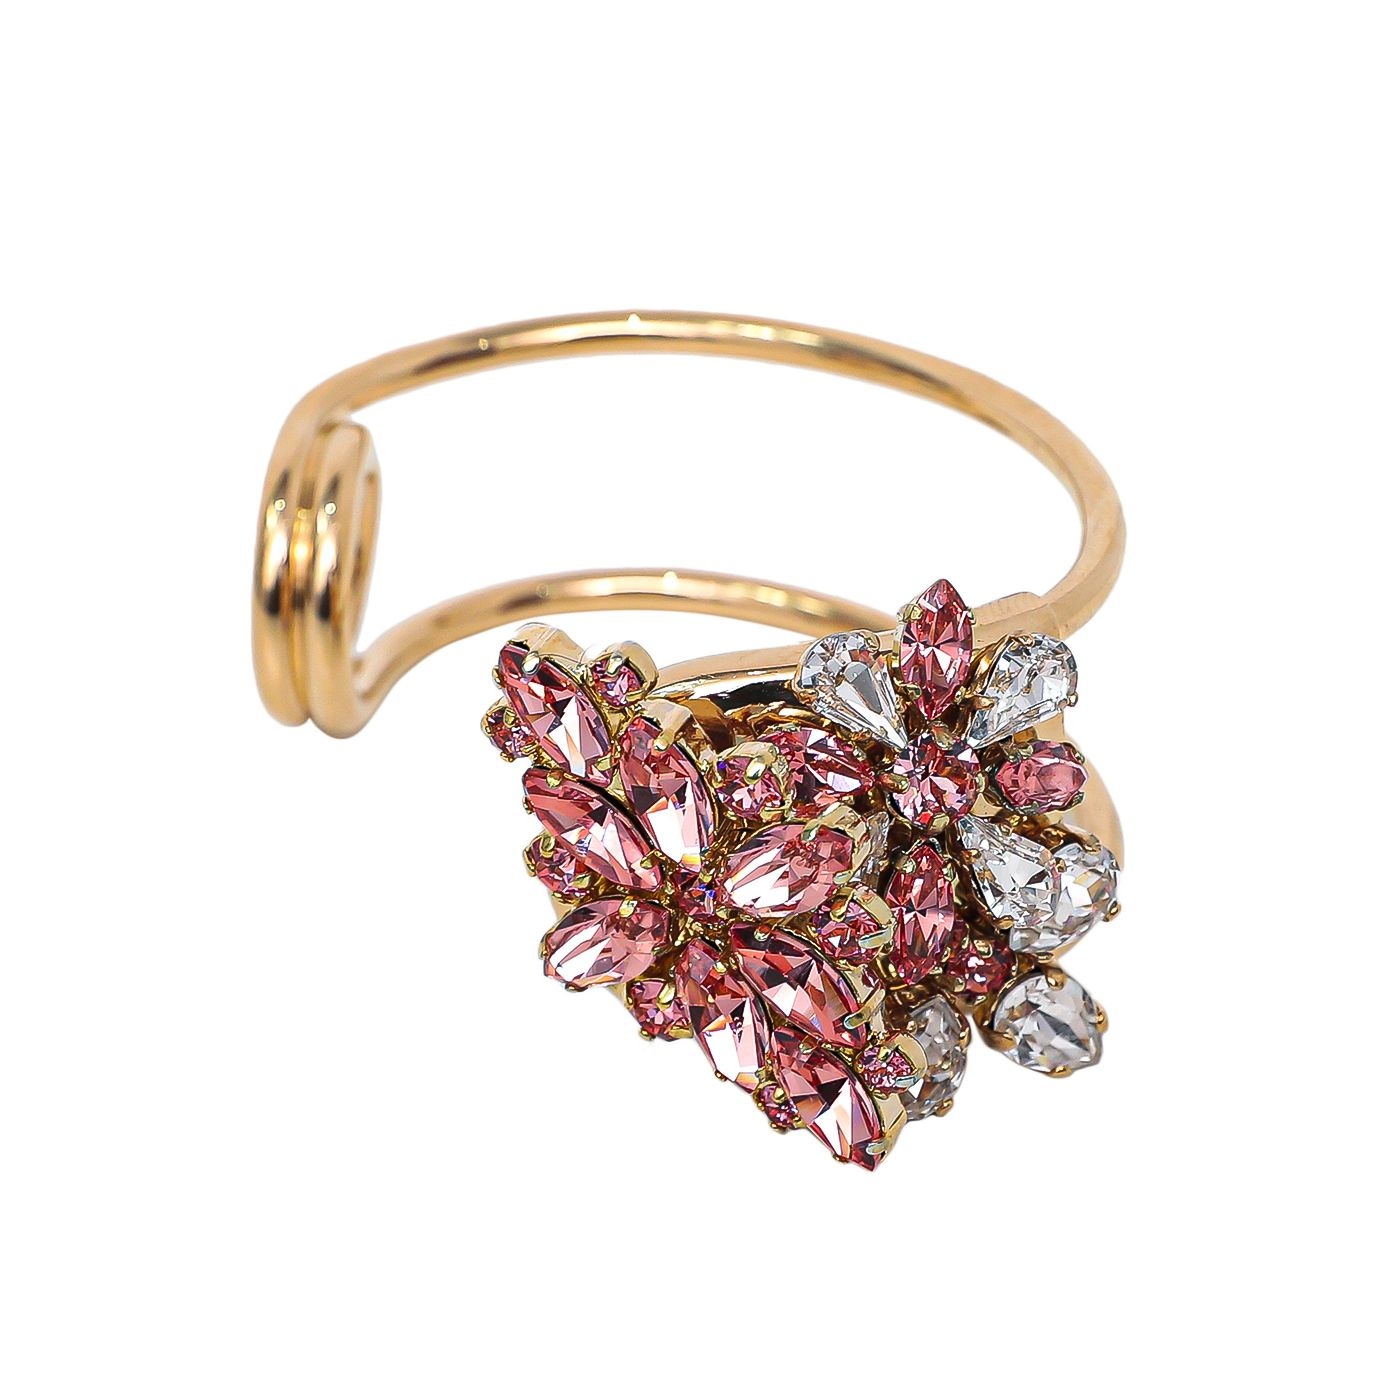 Burberry Pink Daisy Crystal Open Cuff Bracelet